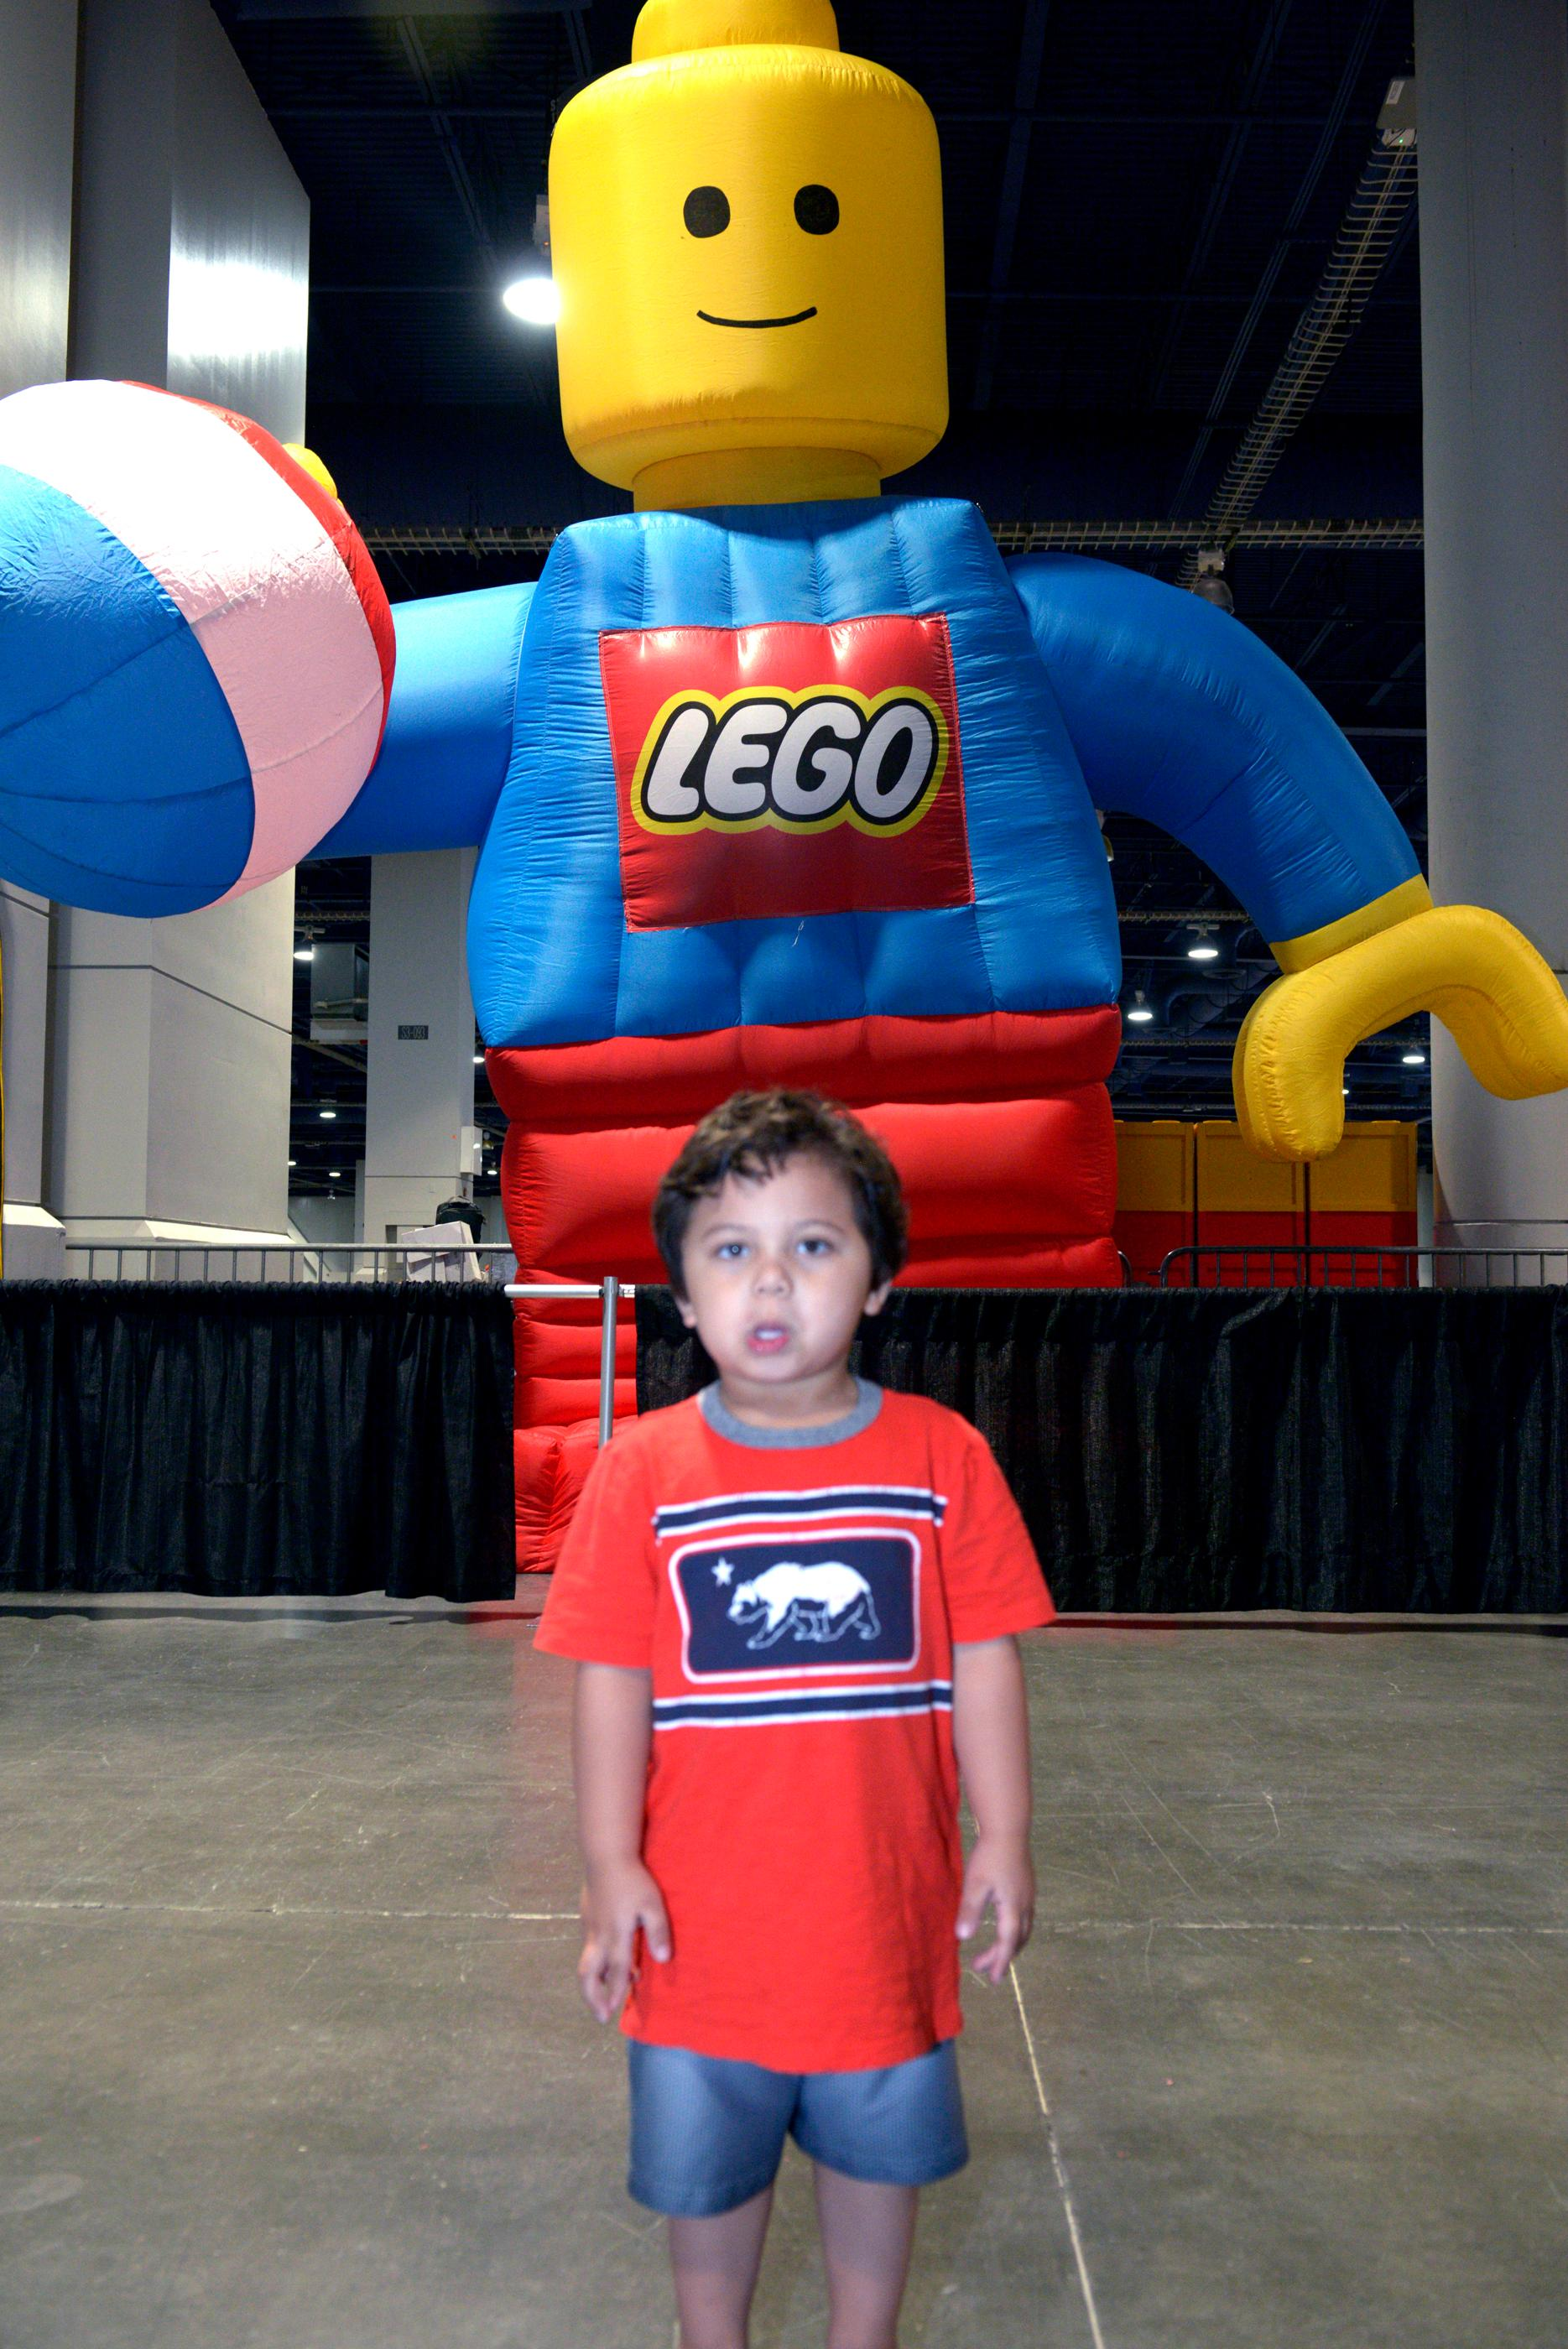 3 Year-old Preston Stoker is a little apprehensive about the 20 ft. tall Lego man behind him during the Brick Fest Live Lego Fan Experience at the Las Vegas Convention Center, September 9, 2017. [Glenn Pinkerton/Las Vegas News Bureau]